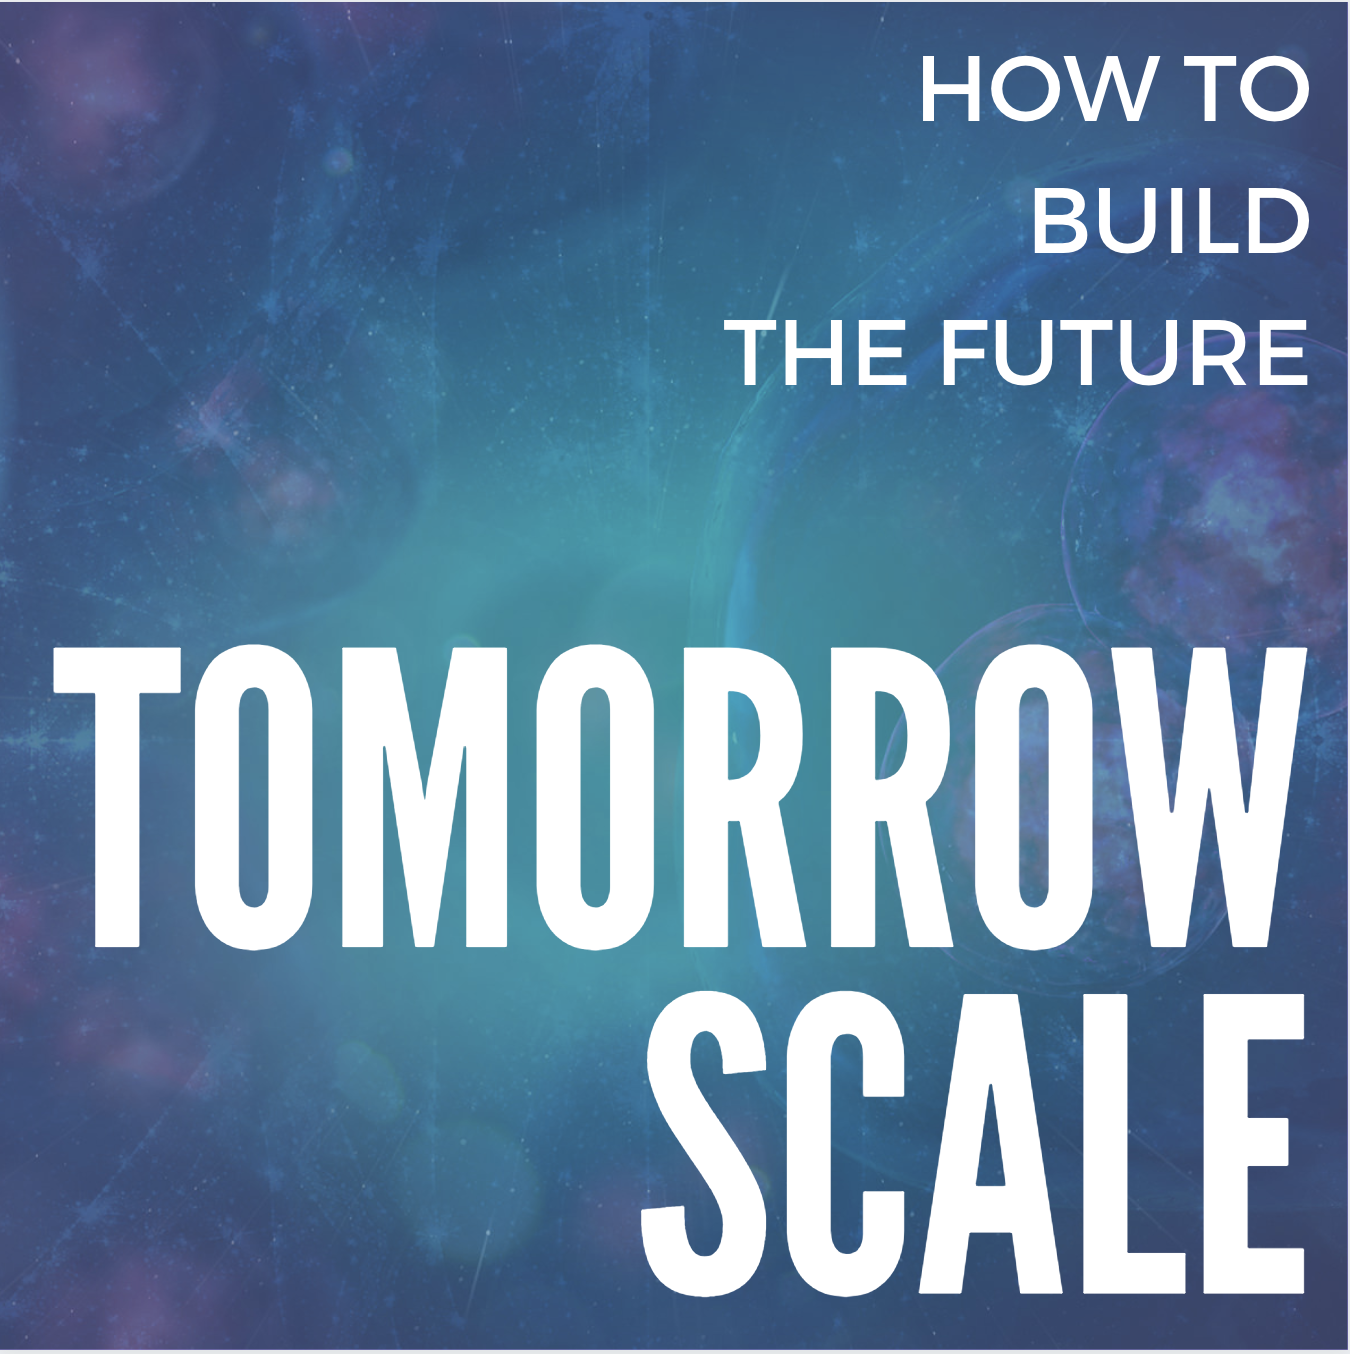 TomorrowScale Podcast Preview